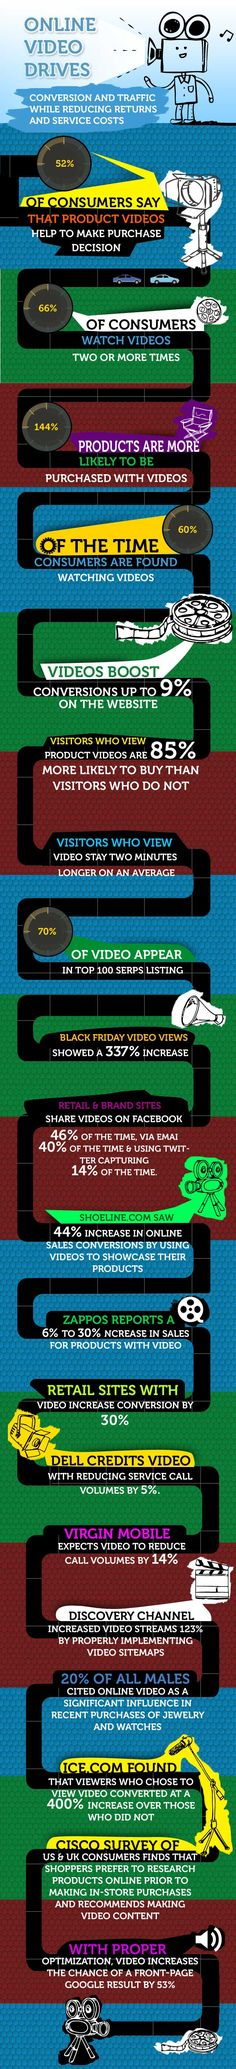 Video production is one of the marketing tactics that drives customers, traffic and online leads. In the recent survey's we found the effectiveness of video marketing and long-term benefits of videos. Customers repeatedly says, videos help more than the c Marketing Mail, Marketing Tactics, Mobile Marketing, Marketing Digital, Content Marketing, Internet Marketing, Online Marketing, Social Media Marketing, Marketing News